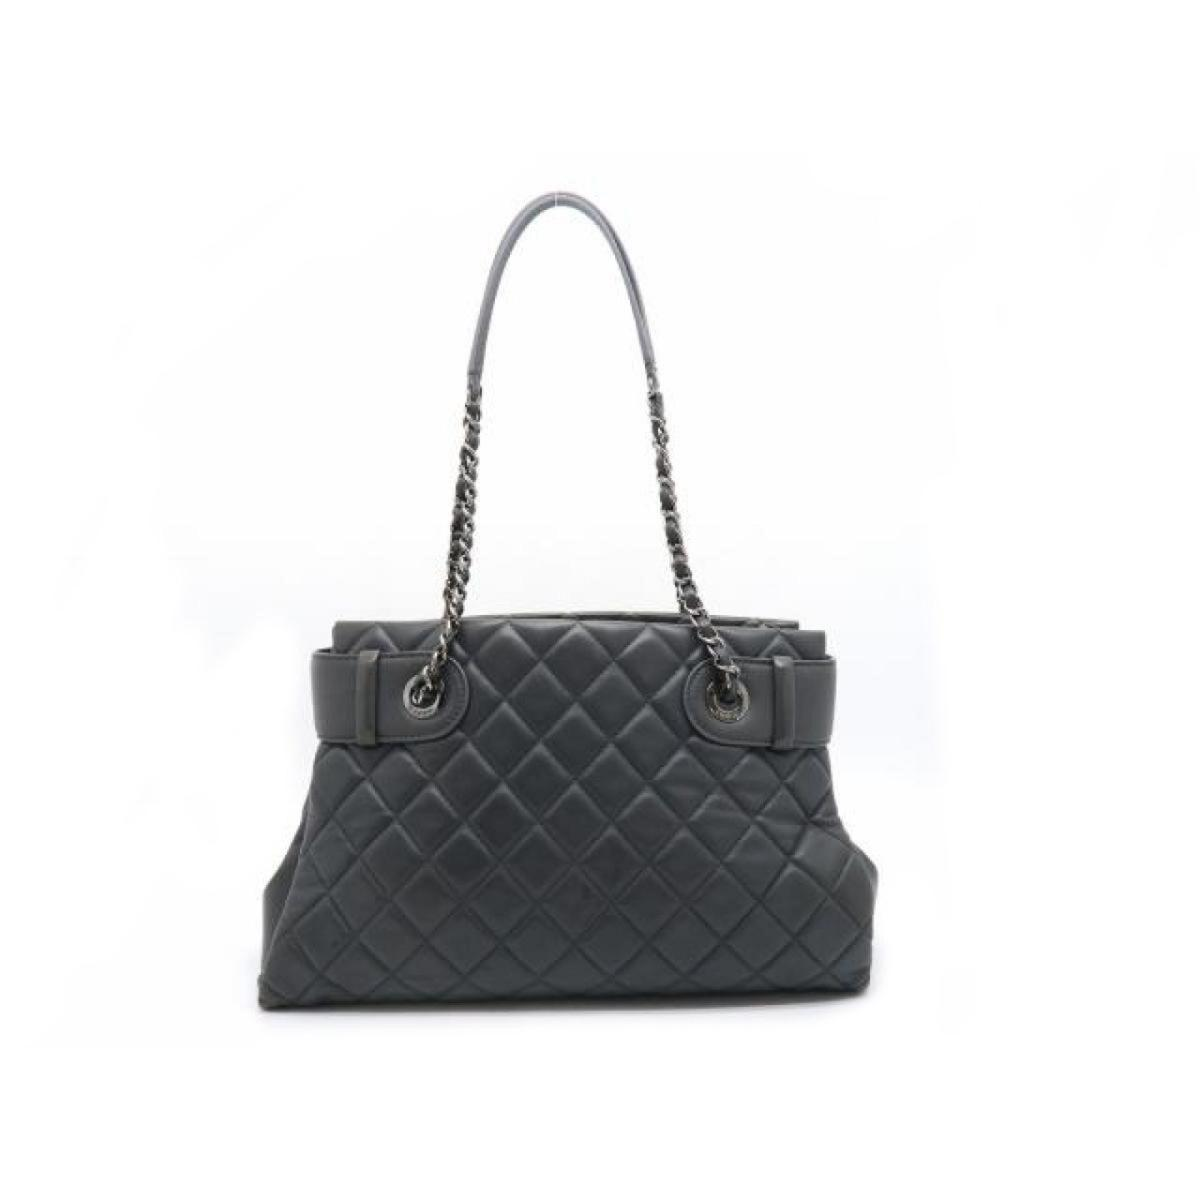 6aca643f6418 Chanel - Cc Mark Stitch Shw Chain Tote Shoulder Bag Lamb Leather Gray Used  Vintage -. View fullscreen